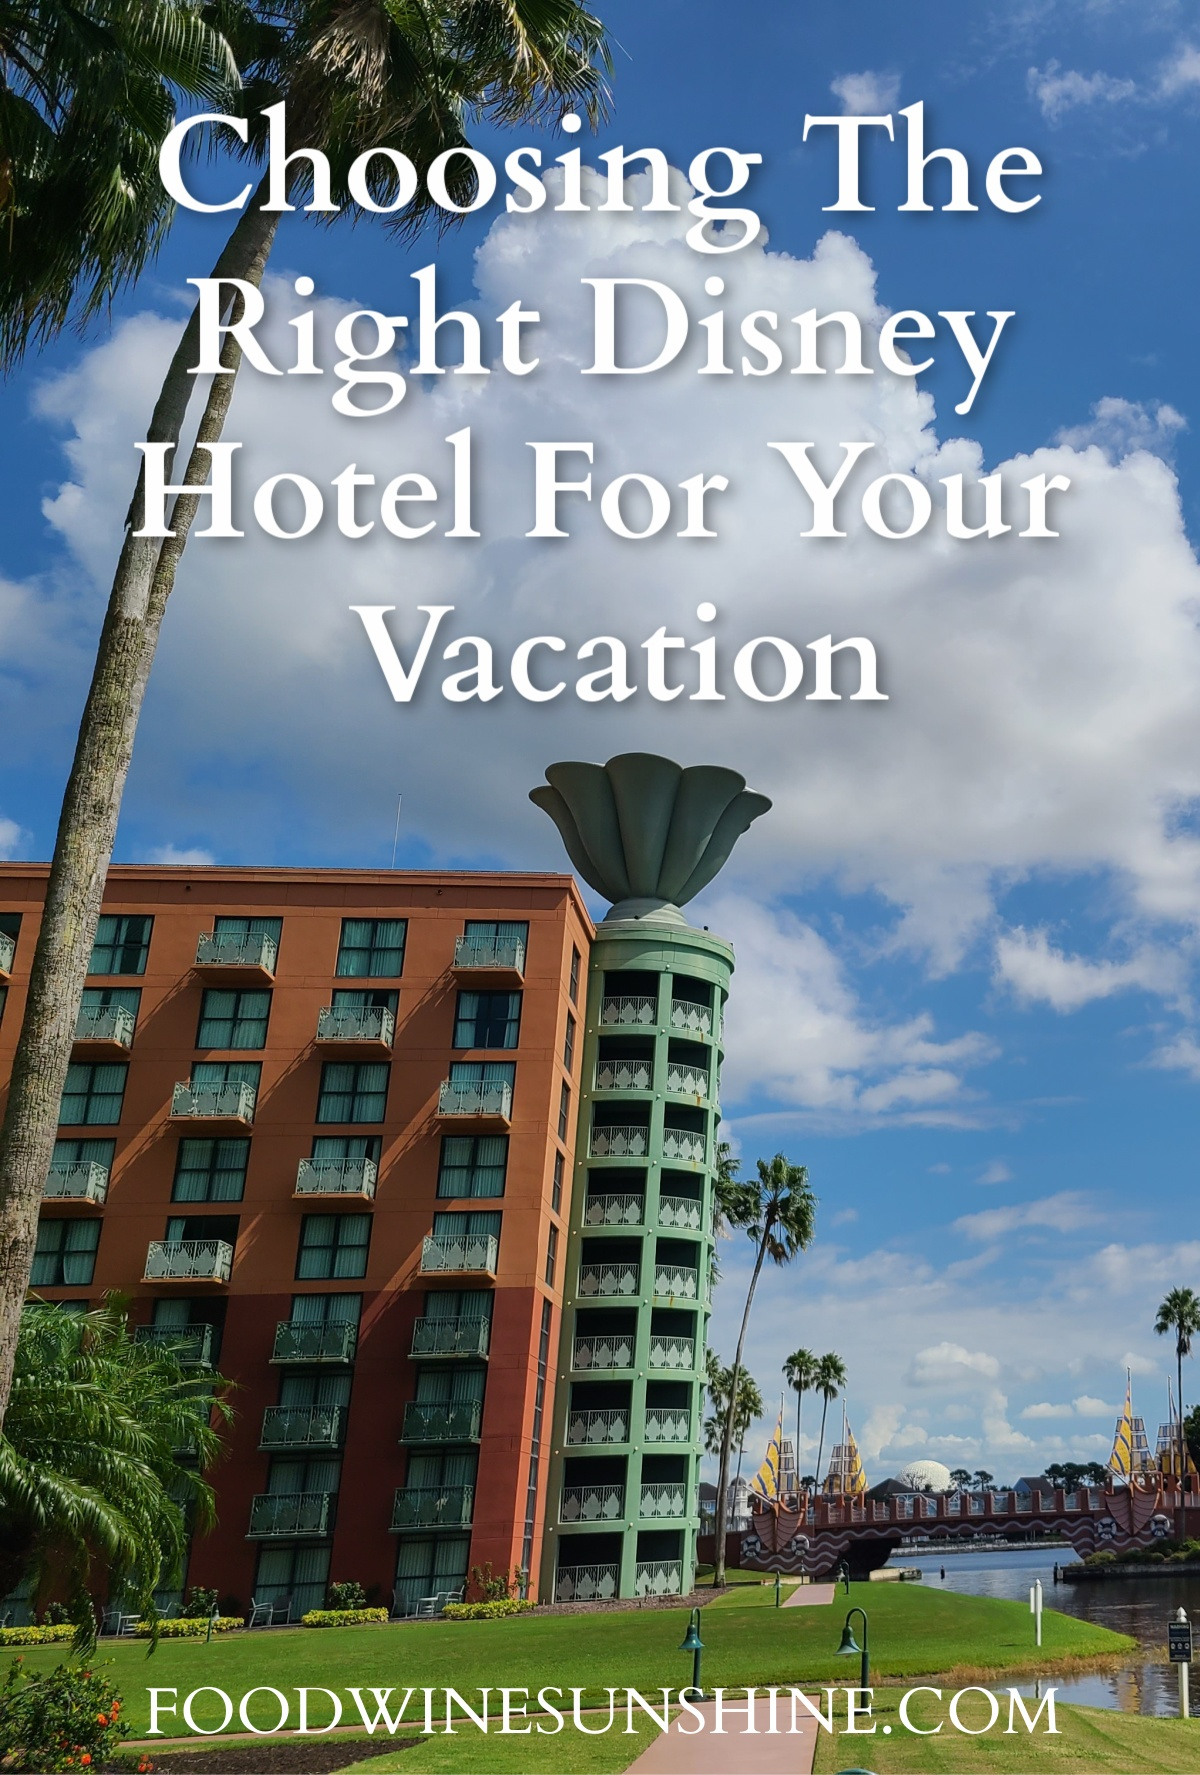 Choosing The Right Disney Hotel For Your Vacation